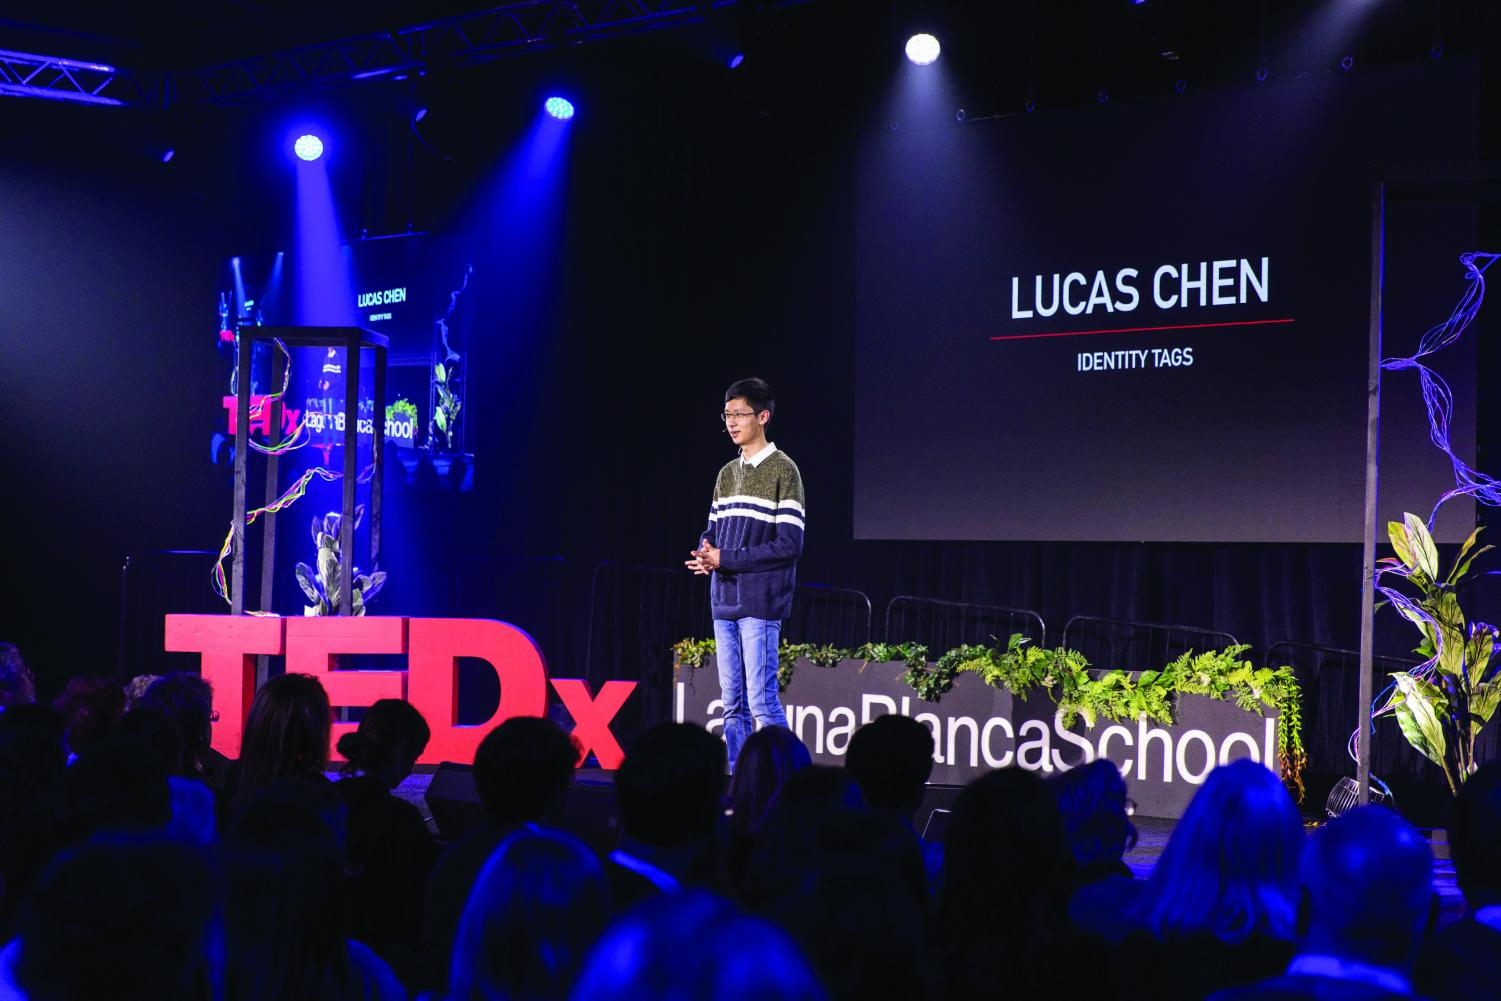 Sophomore Lucas Chen presents at the TEDXLagunaBlanca event and discusses the barrier and tags that come with being a Chinese student in America.